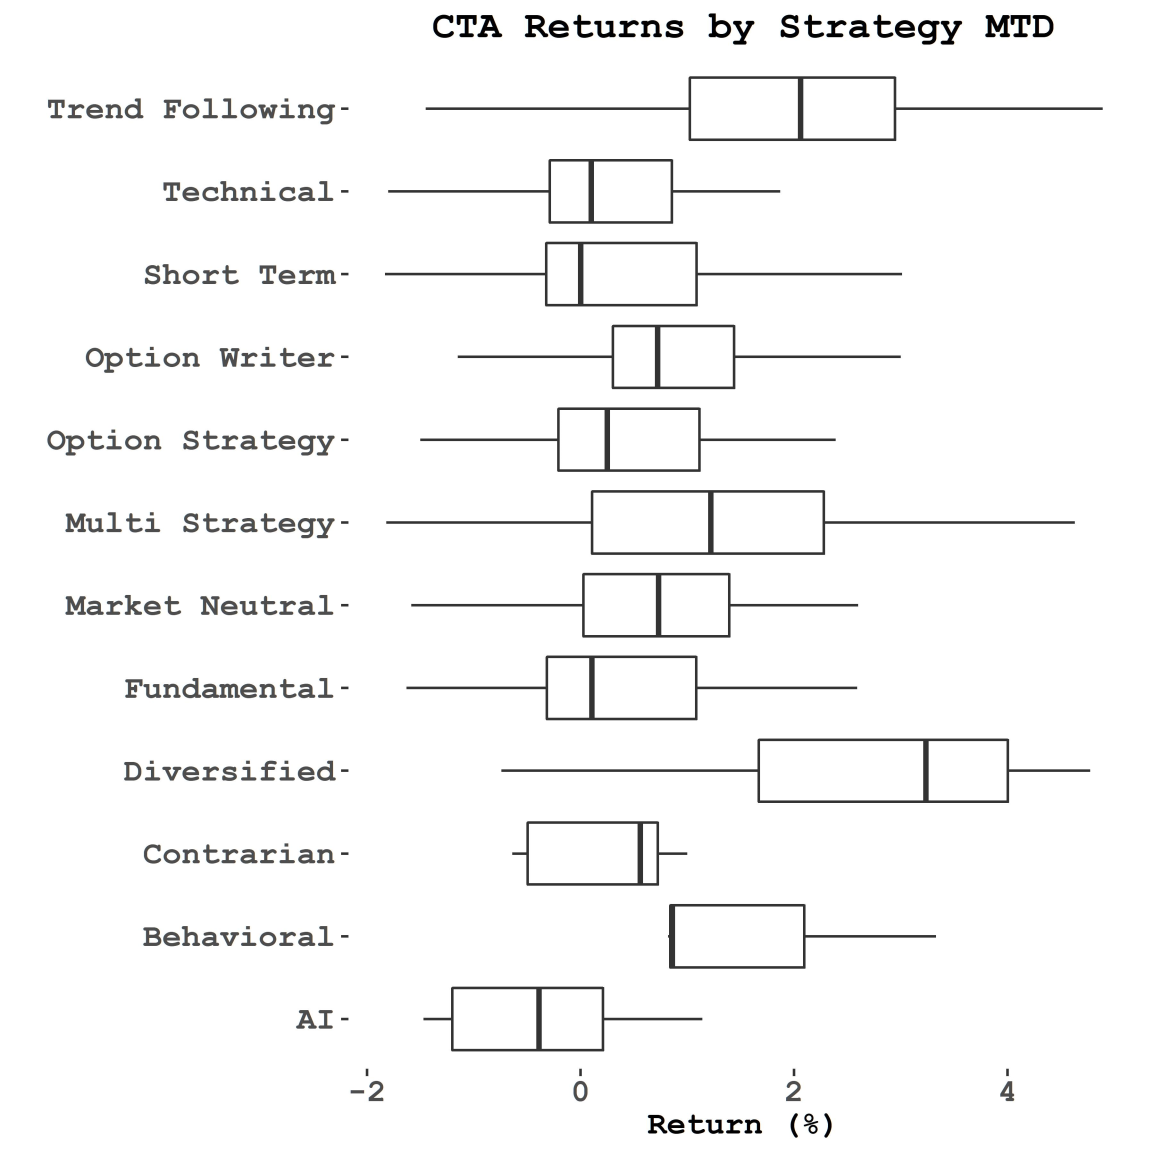 CTA Returns by Strategy